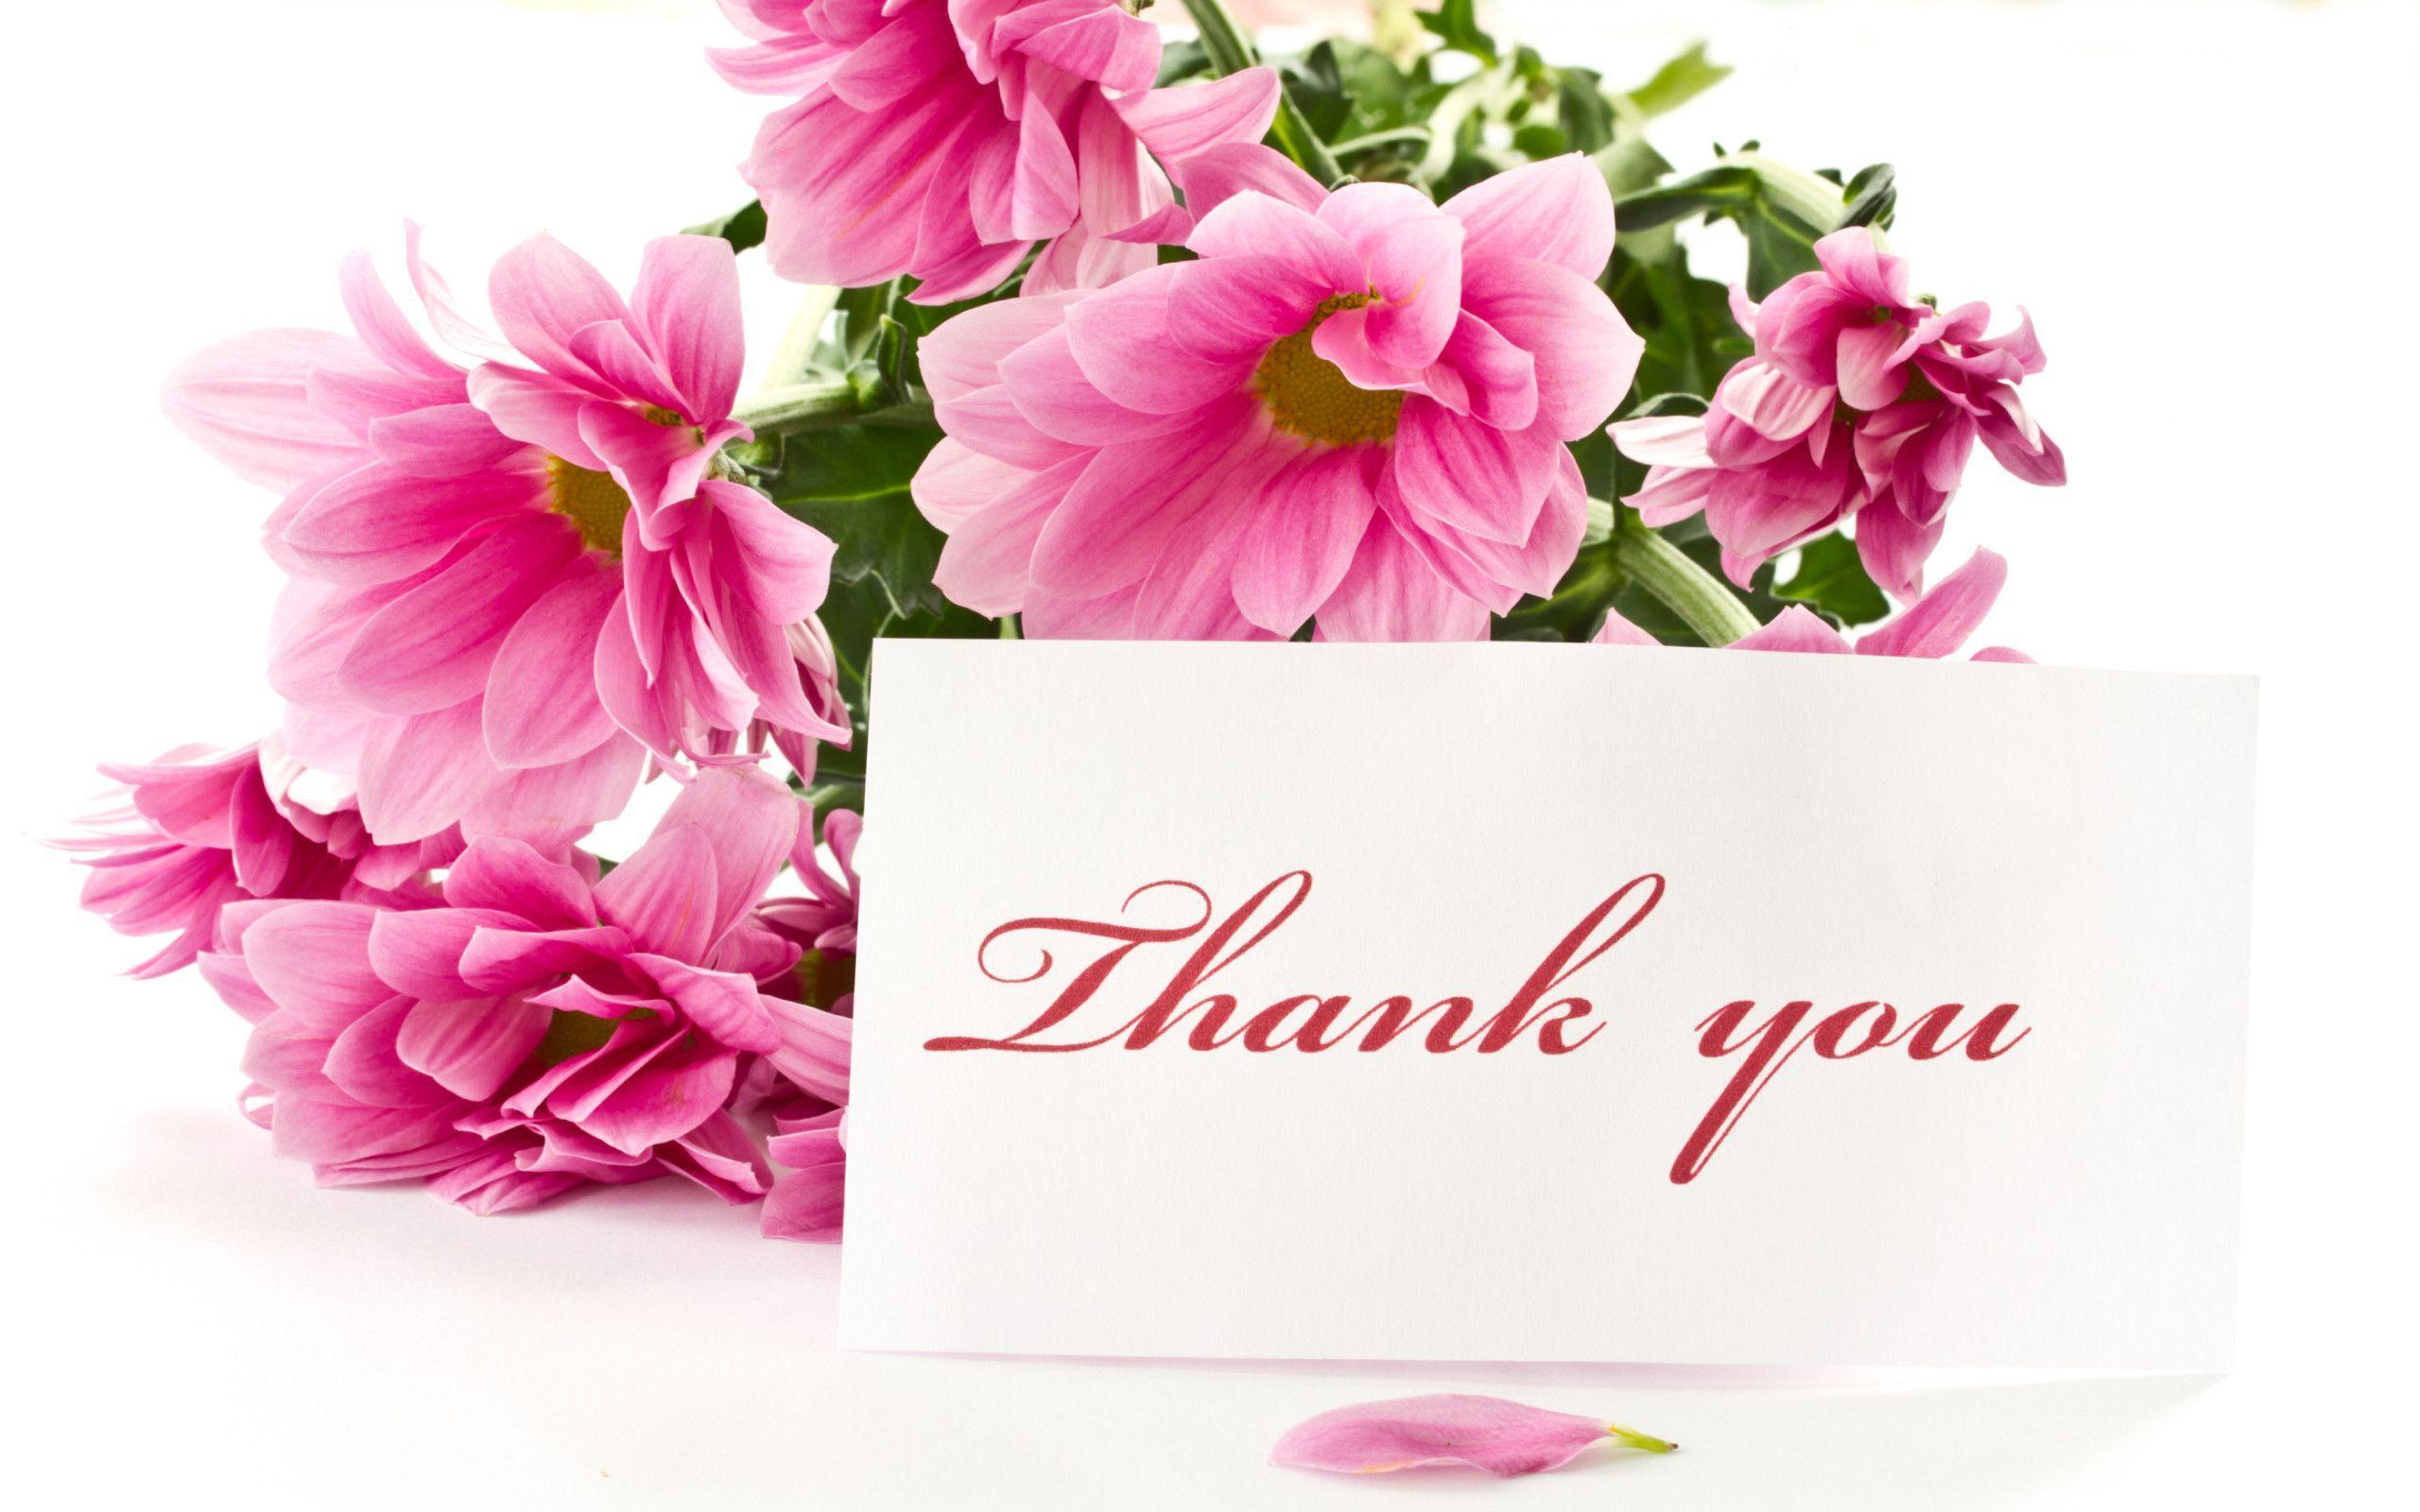 Wallpapers For > Thank You Wallpaper Images